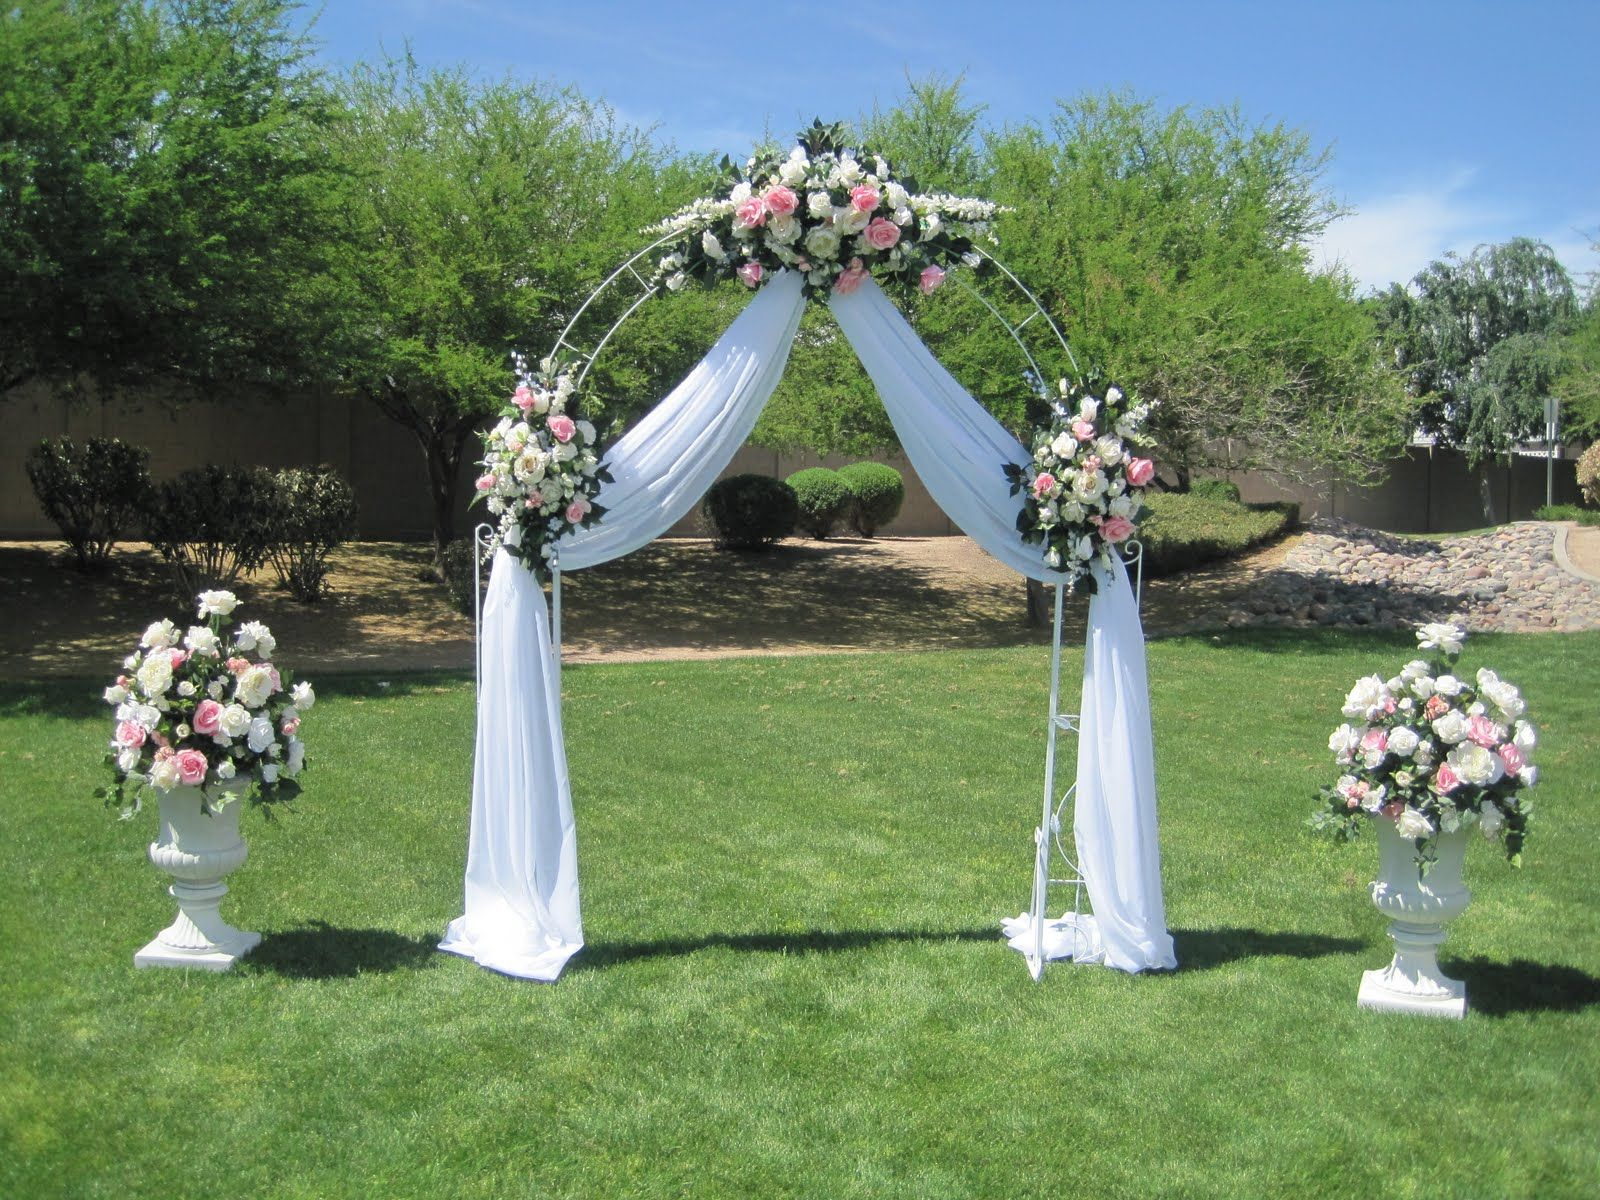 Wedding arch decor white wrought iron arch 3 white for Arches decoration ideas